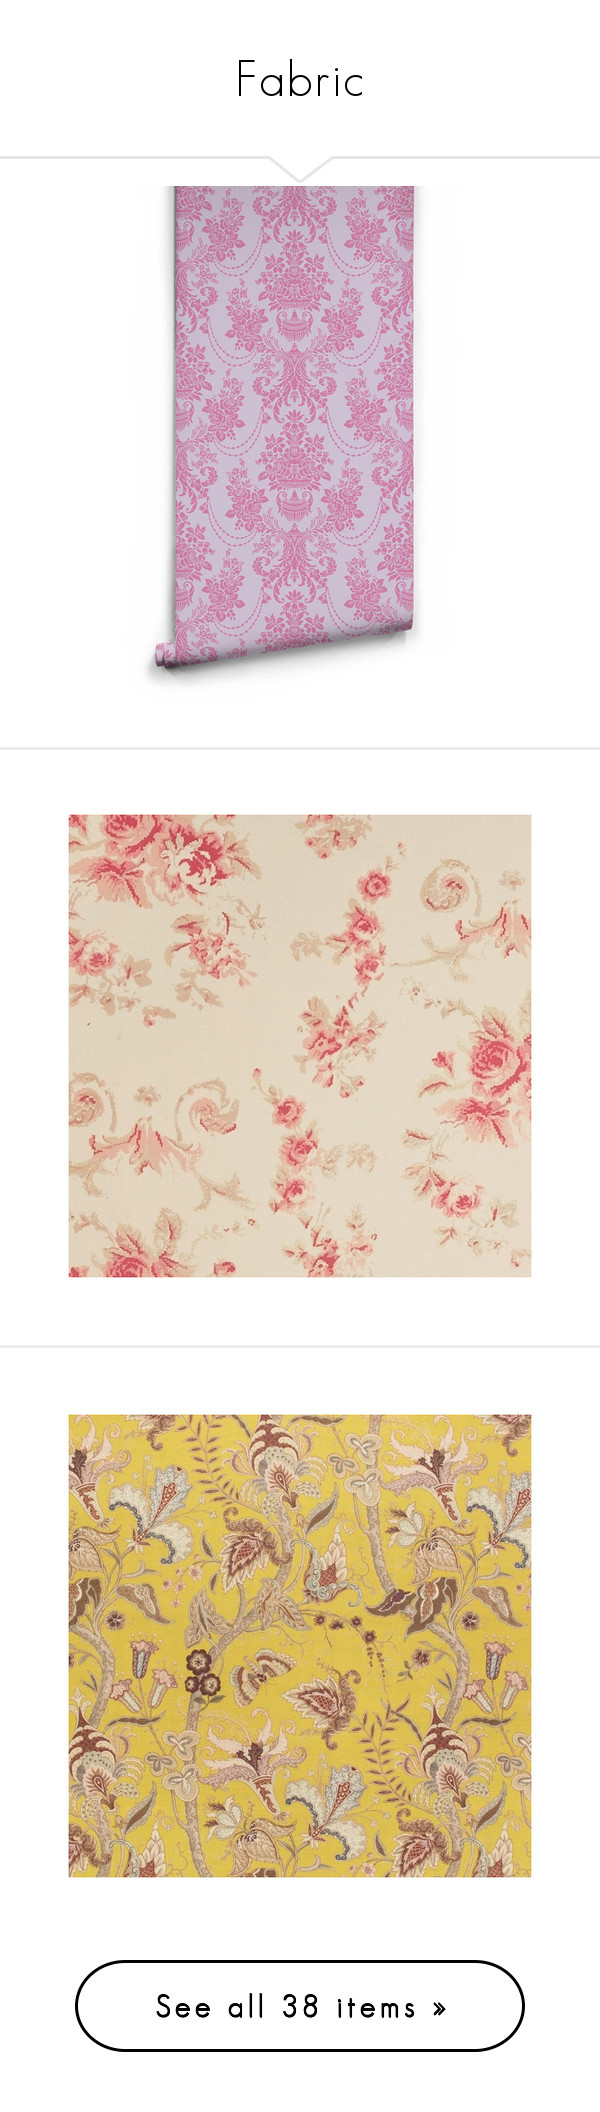 """""""Fabric"""" by chauert ❤ liked on Polyvore featuring home, home decor, wallpaper, wallpaper samples, damask wallpaper, home improvement, fabric, backgrounds, image and art nouveau"""